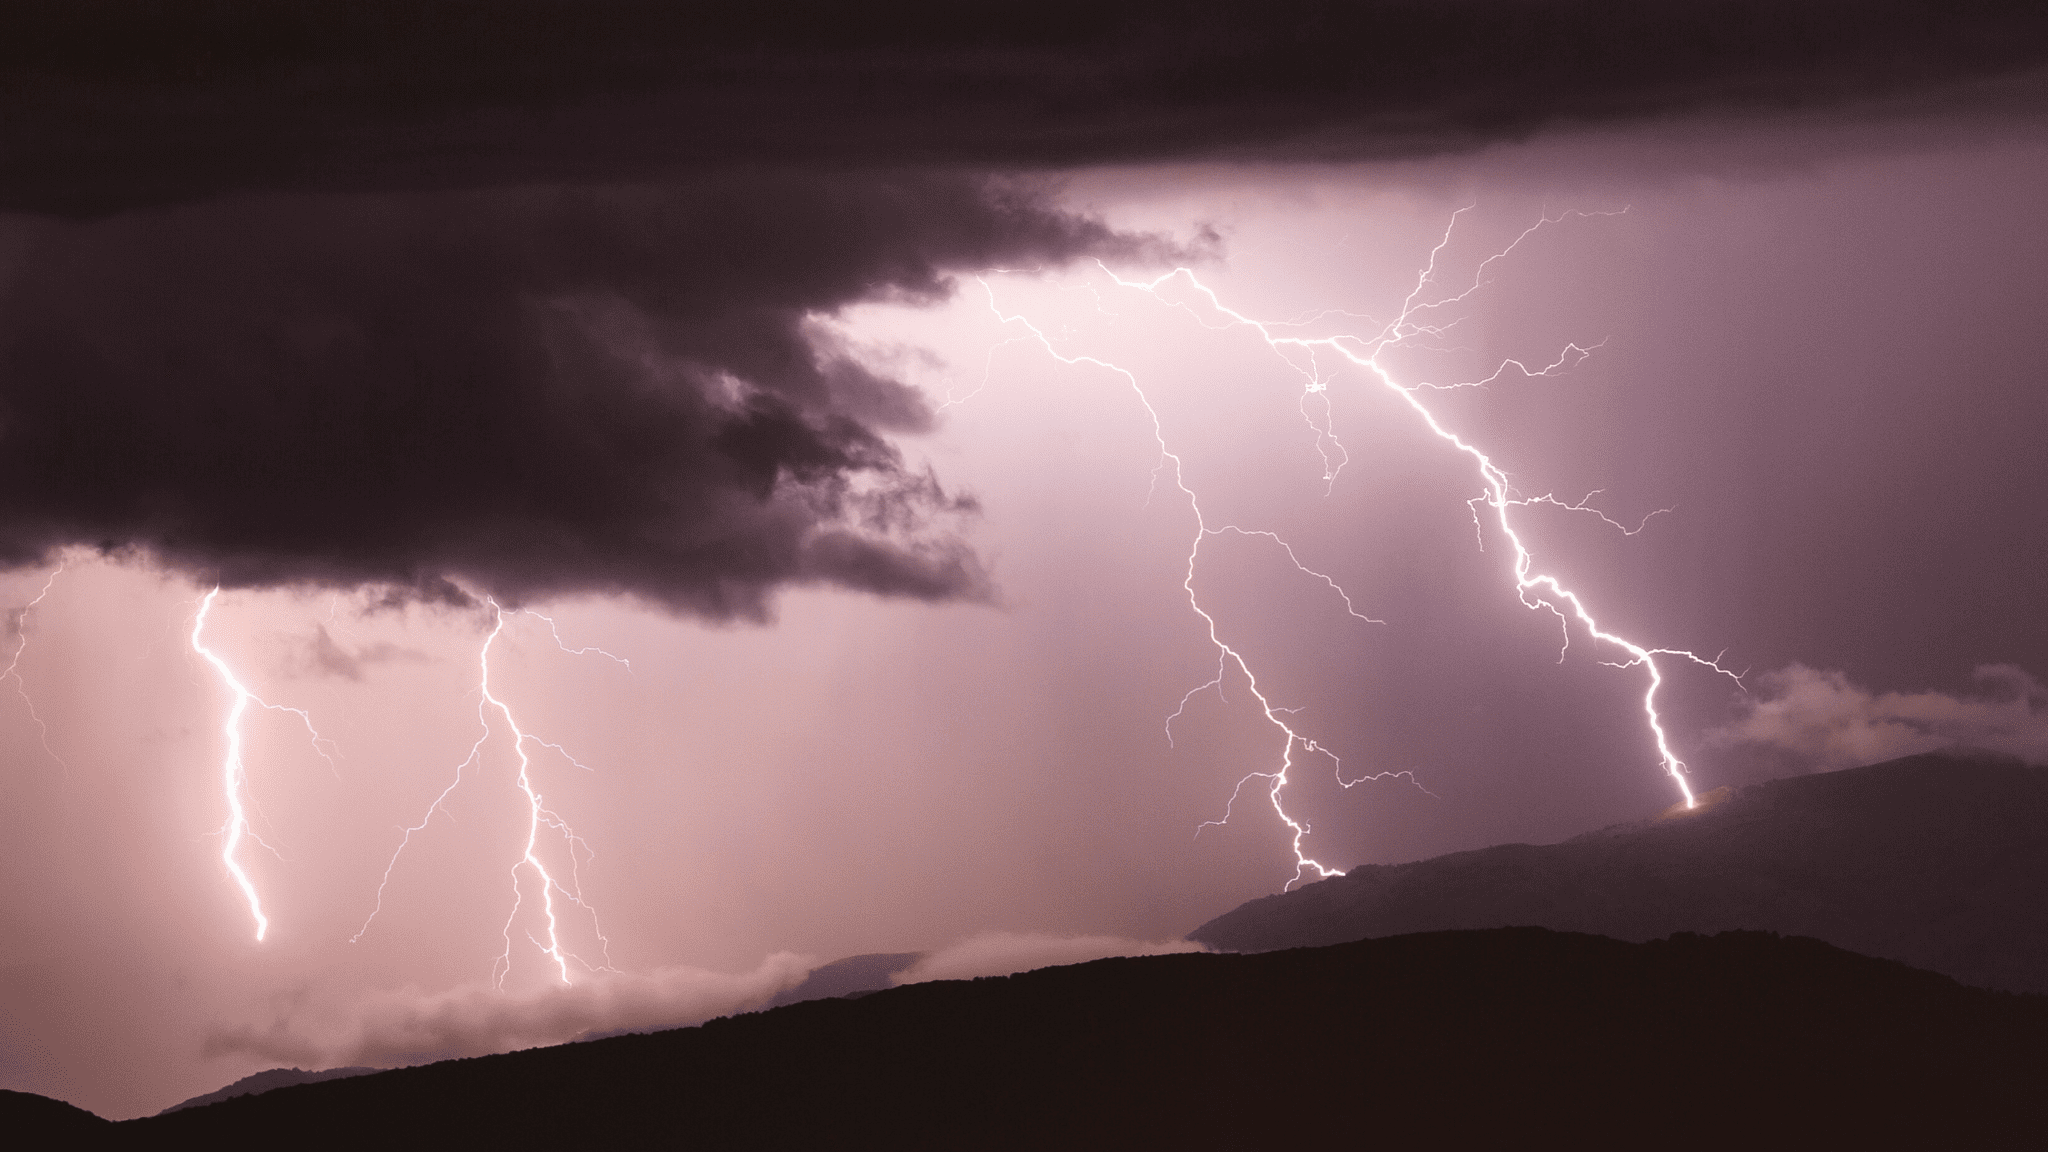 Four lightning strikes on a dark and flat mountain.